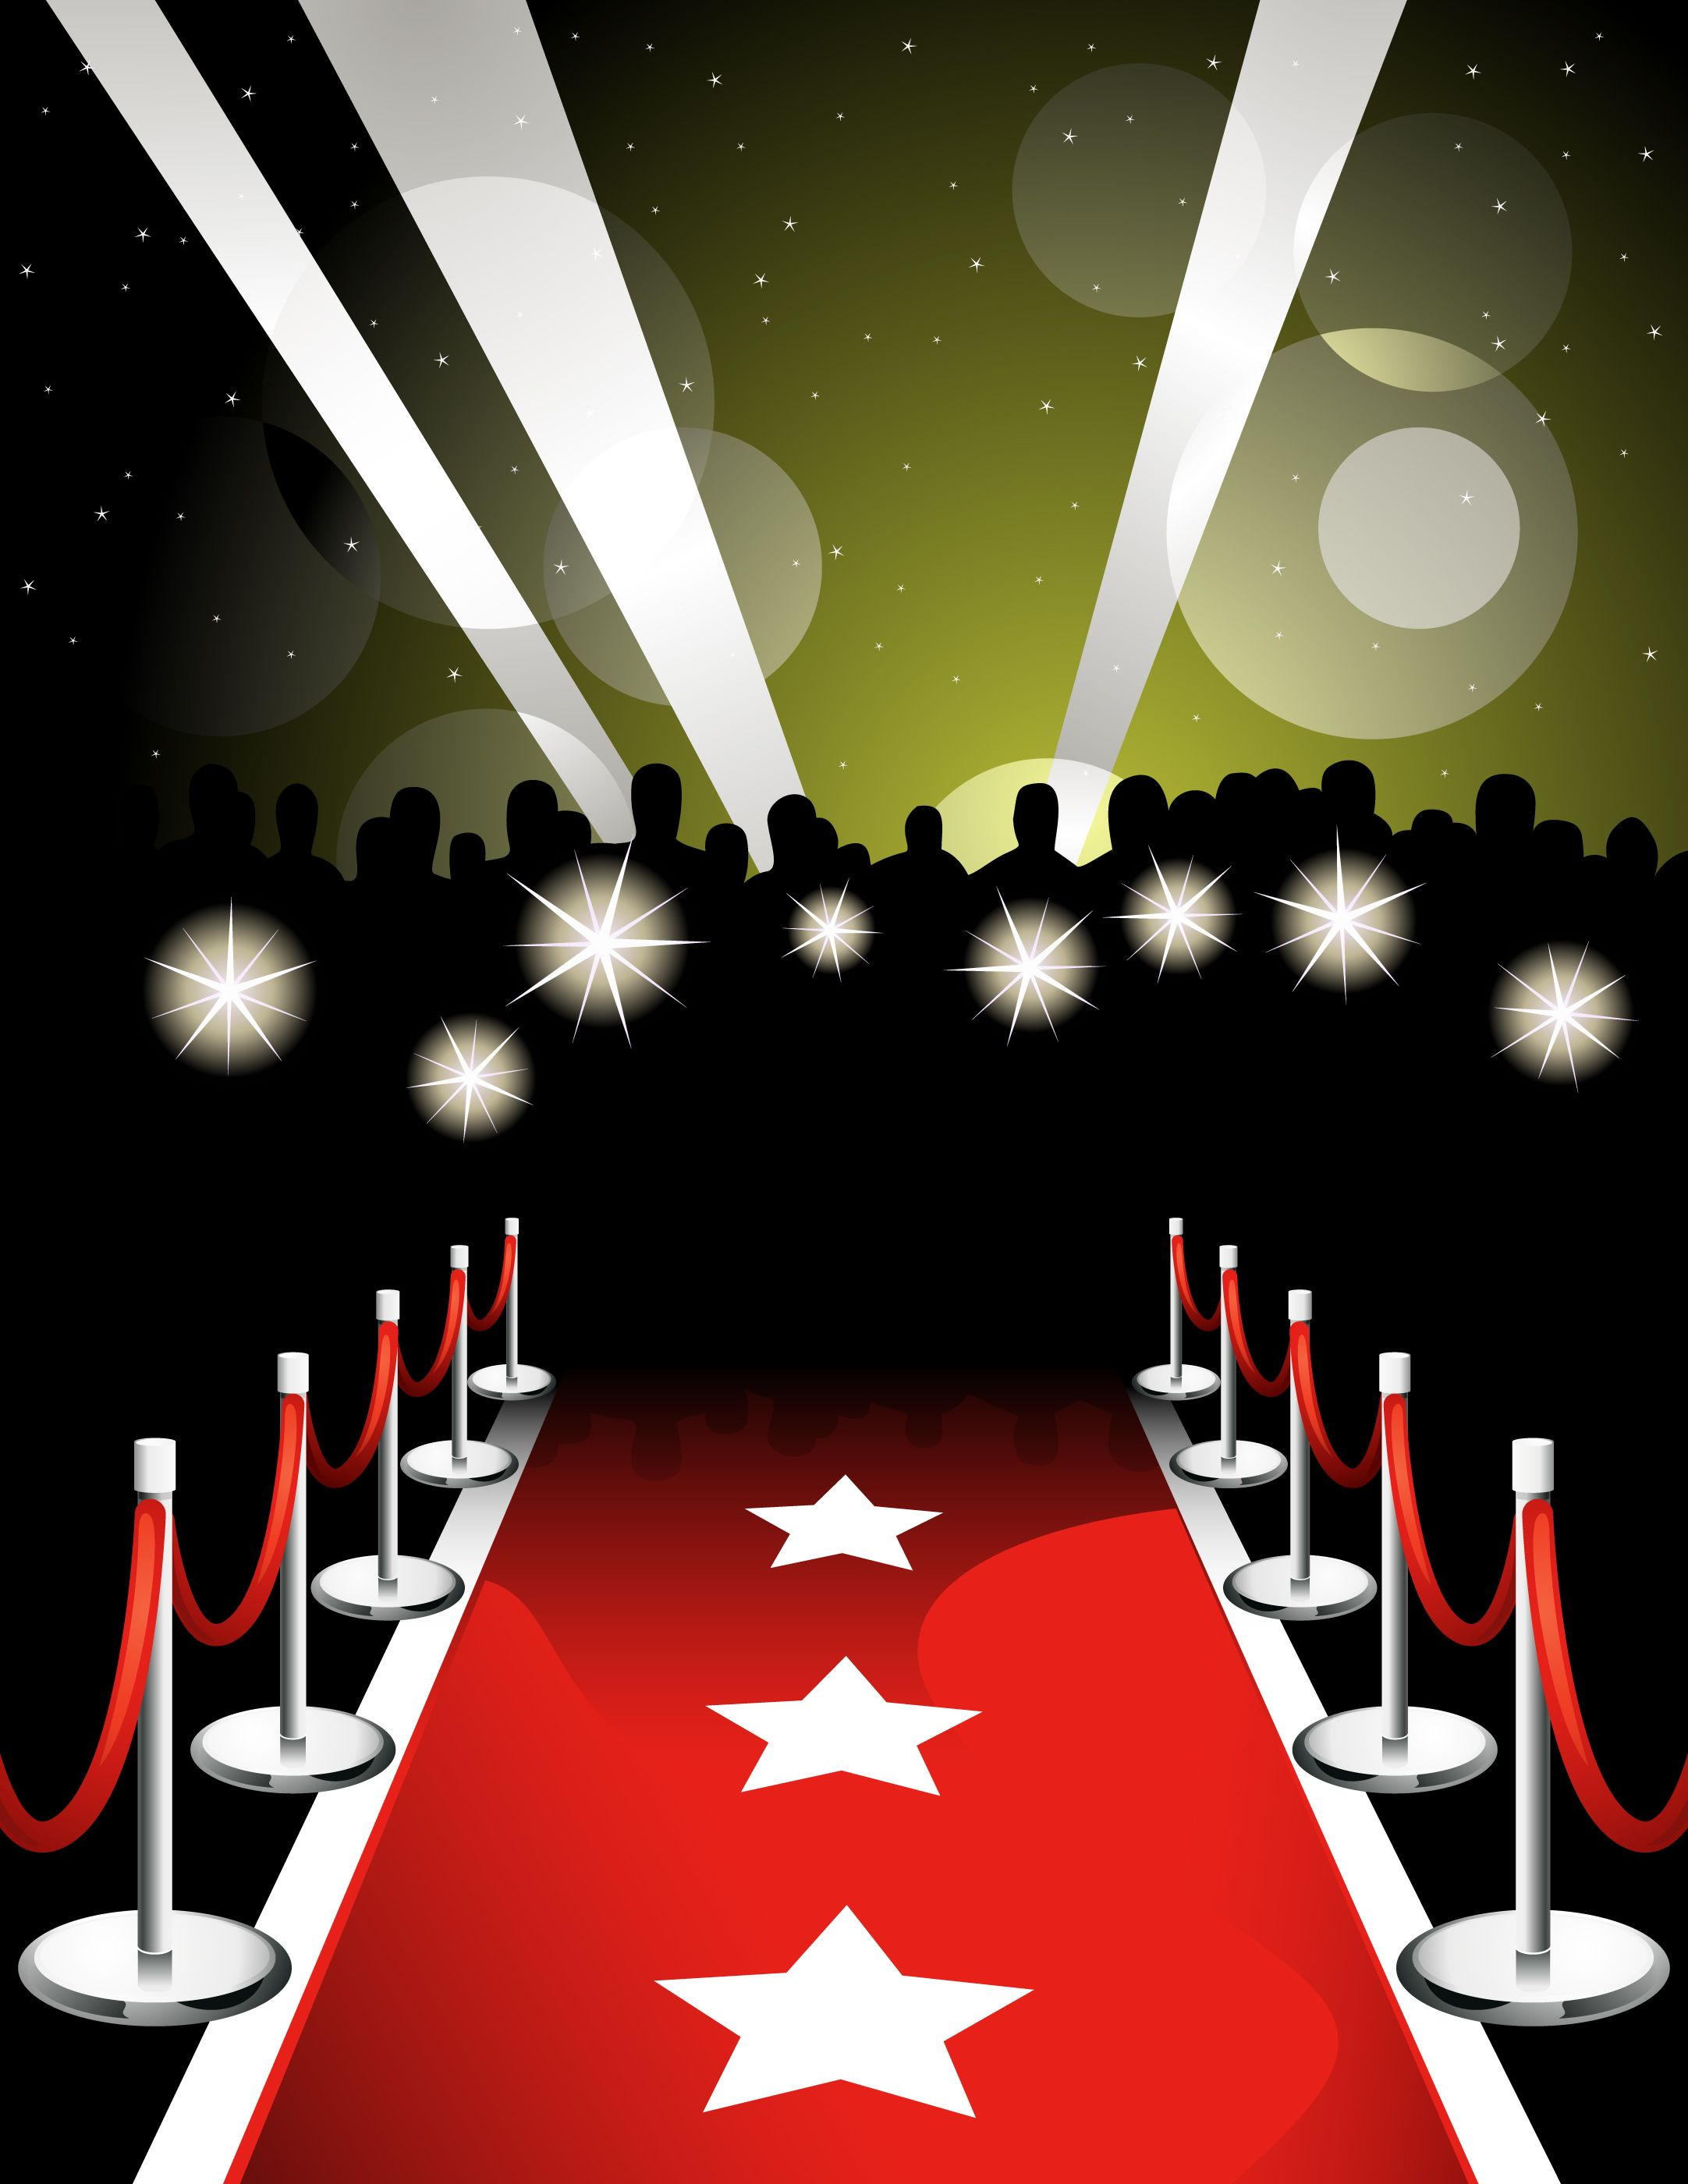 280 Red Carpet free clipart.